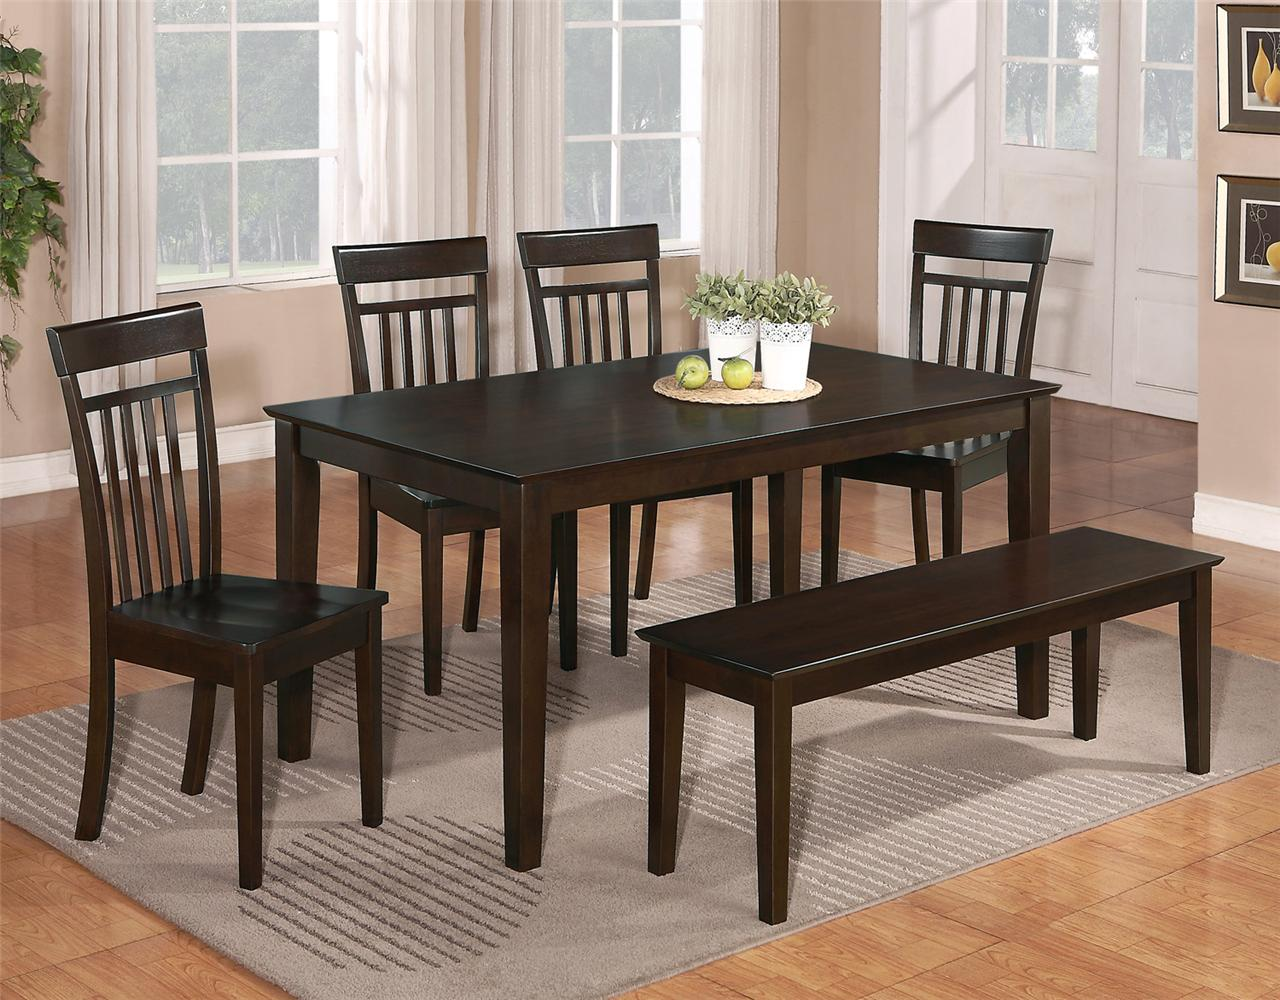 6 pc dinette kitchen dining room set table w 4 wood chair for 4 chair kitchen table set